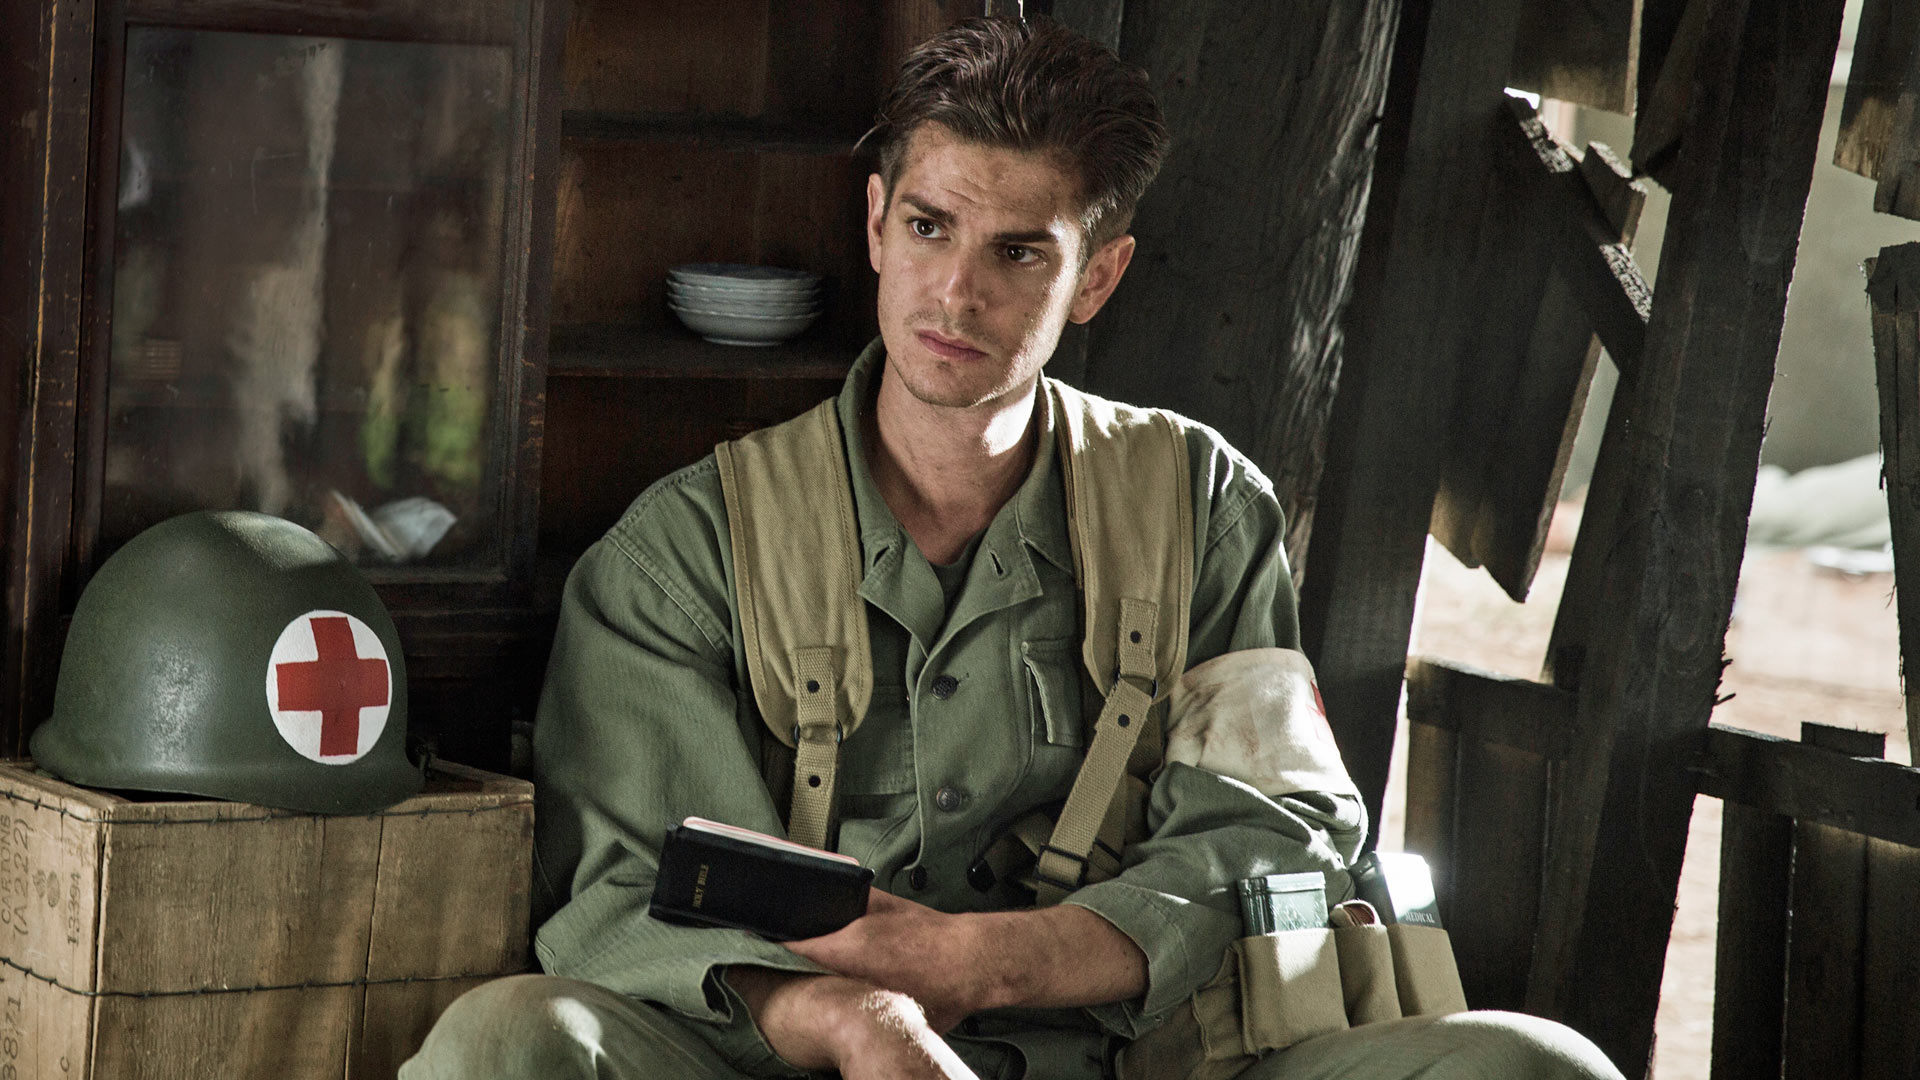 Garfield makes compassion heroic in Hacksaw Ridge.